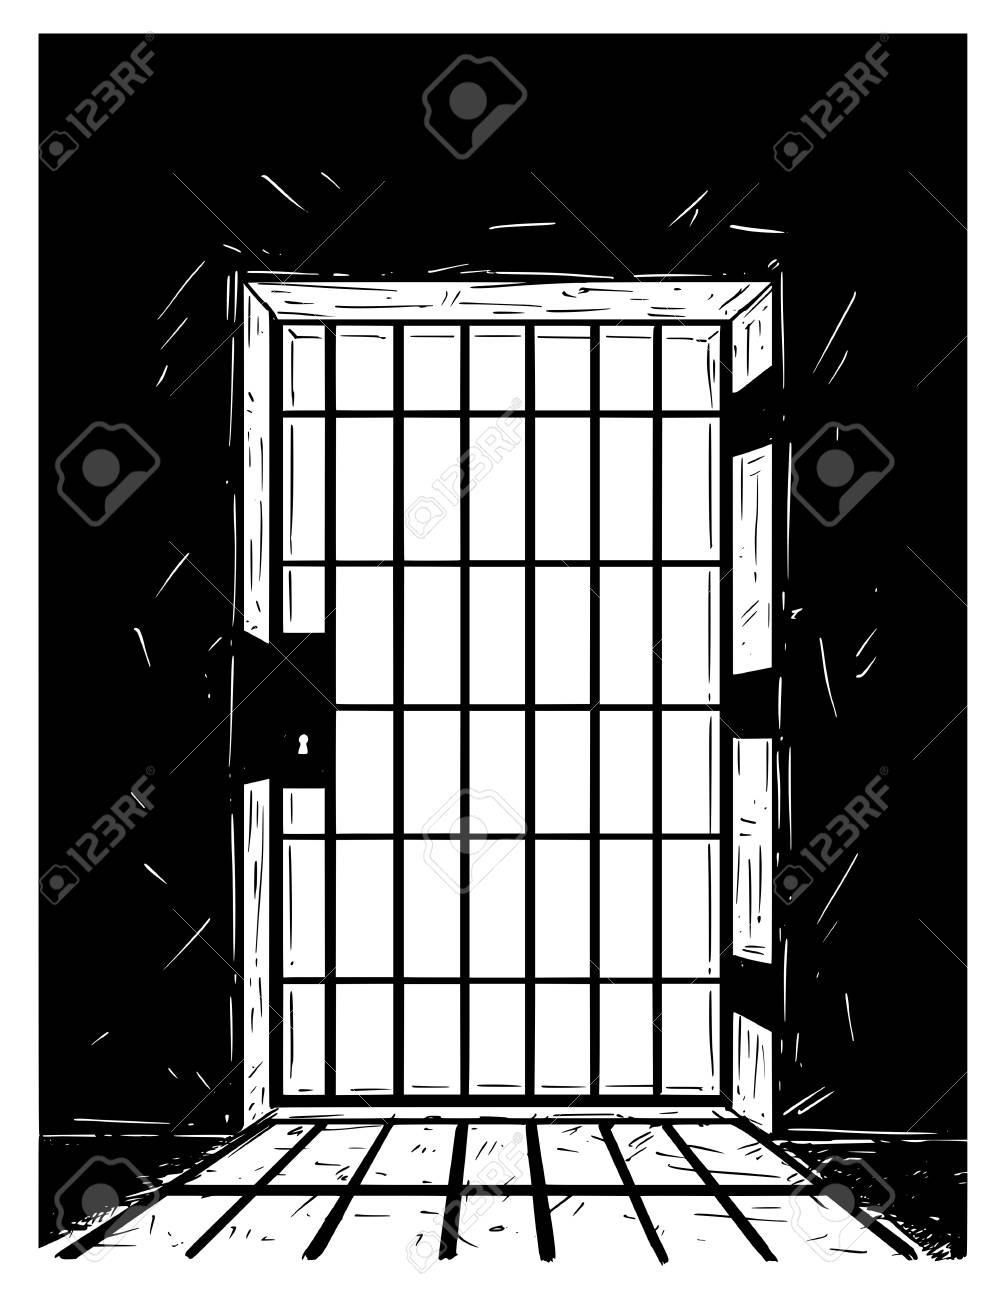 Cartoon vector doodle drawing illustration of prison or jail door made from iron bars casting shadow. - 94762781